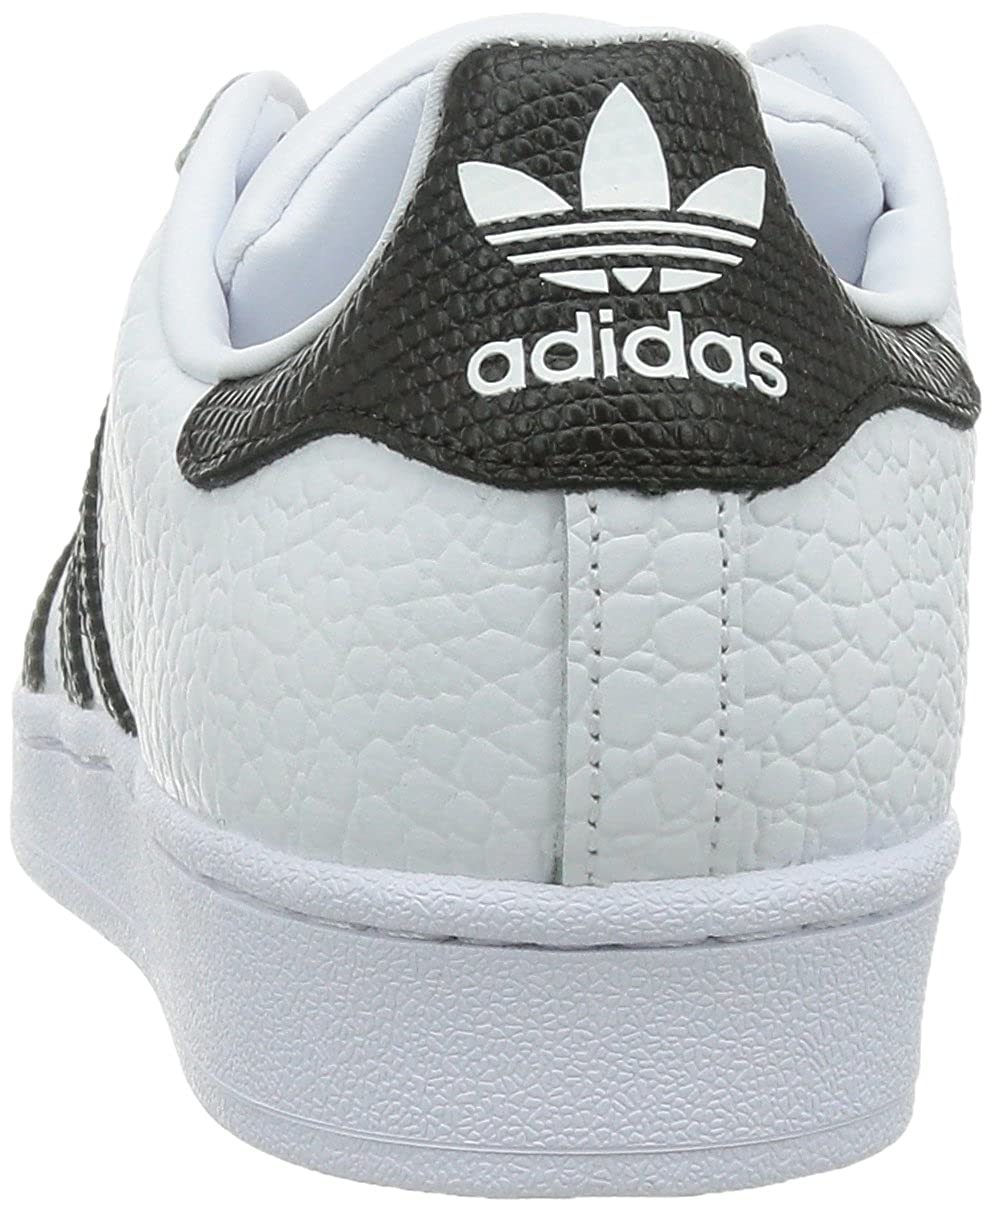 check out df6f1 0cdc0 Adidas Superstar Animal Zapatillas Para Hombre  Amazon.es  Zapatos y  complementos